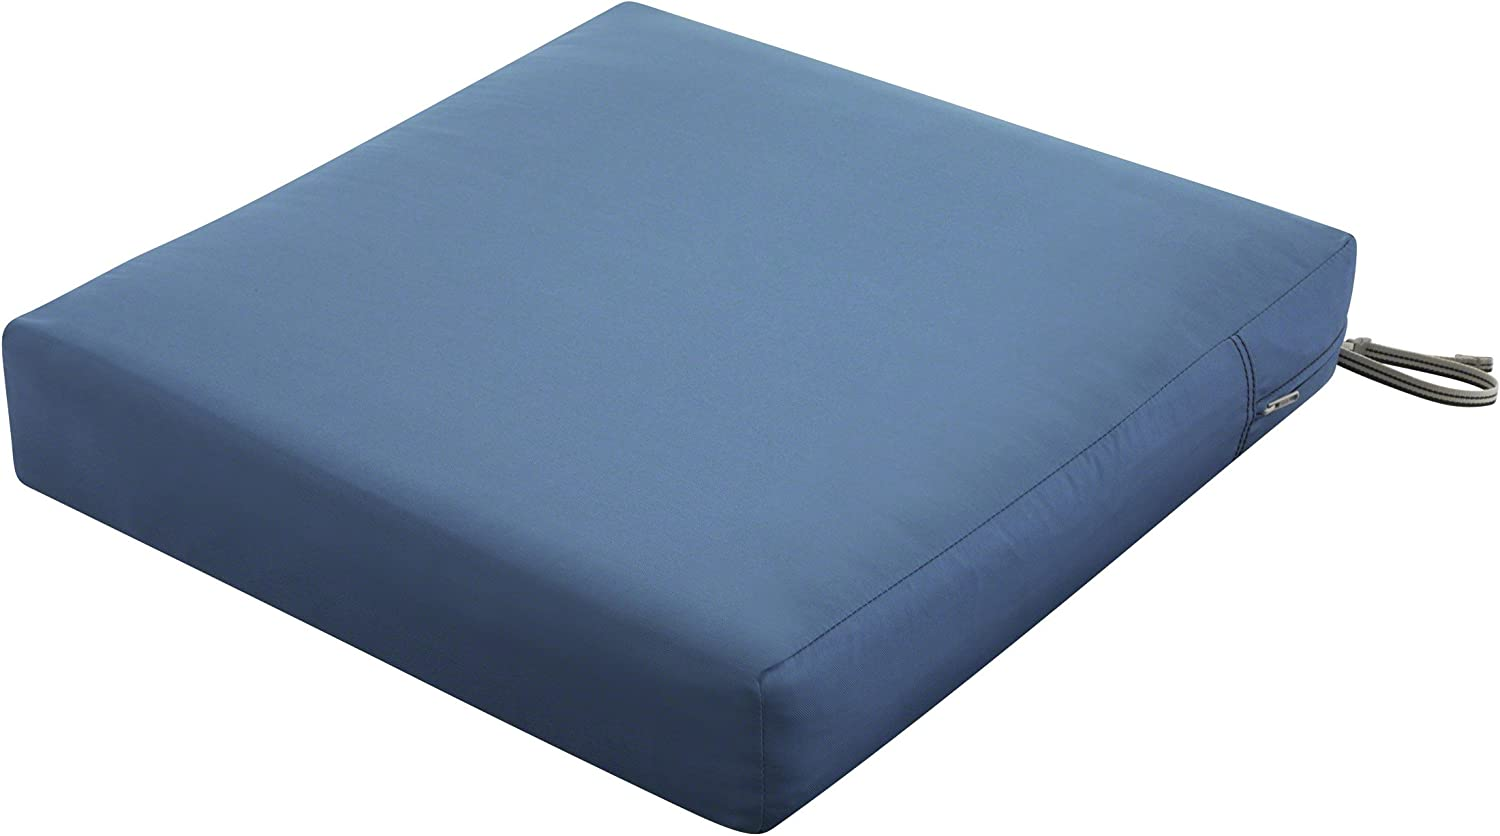 Classic Accessories Ravenna Square Outdoor Patio Seat Cushion, Empire Blue, 23 W x 23 D x 5 T